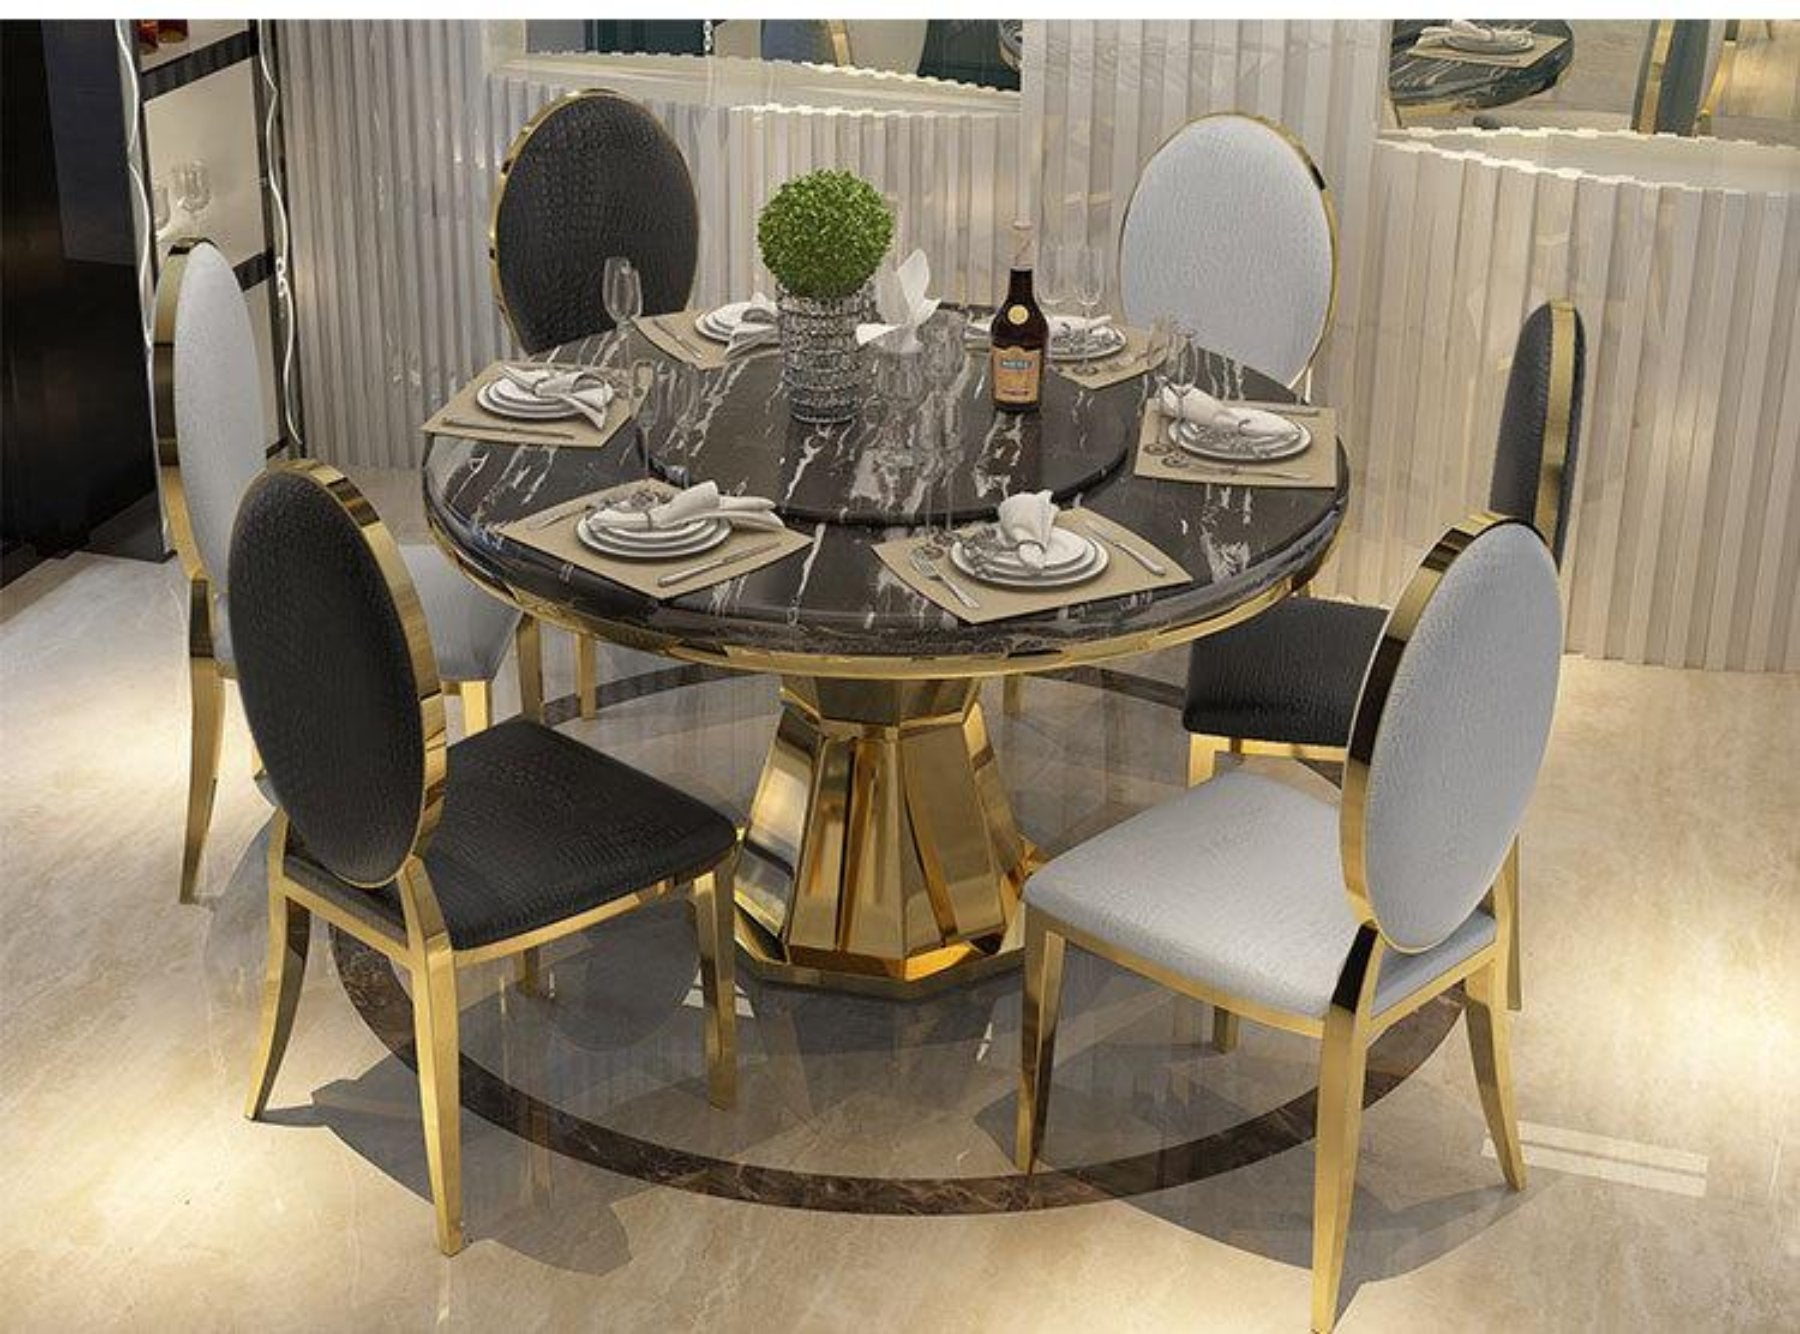 Picture of: Golden Round Marble Top Dining Table With Luxury Chairs My Aashis